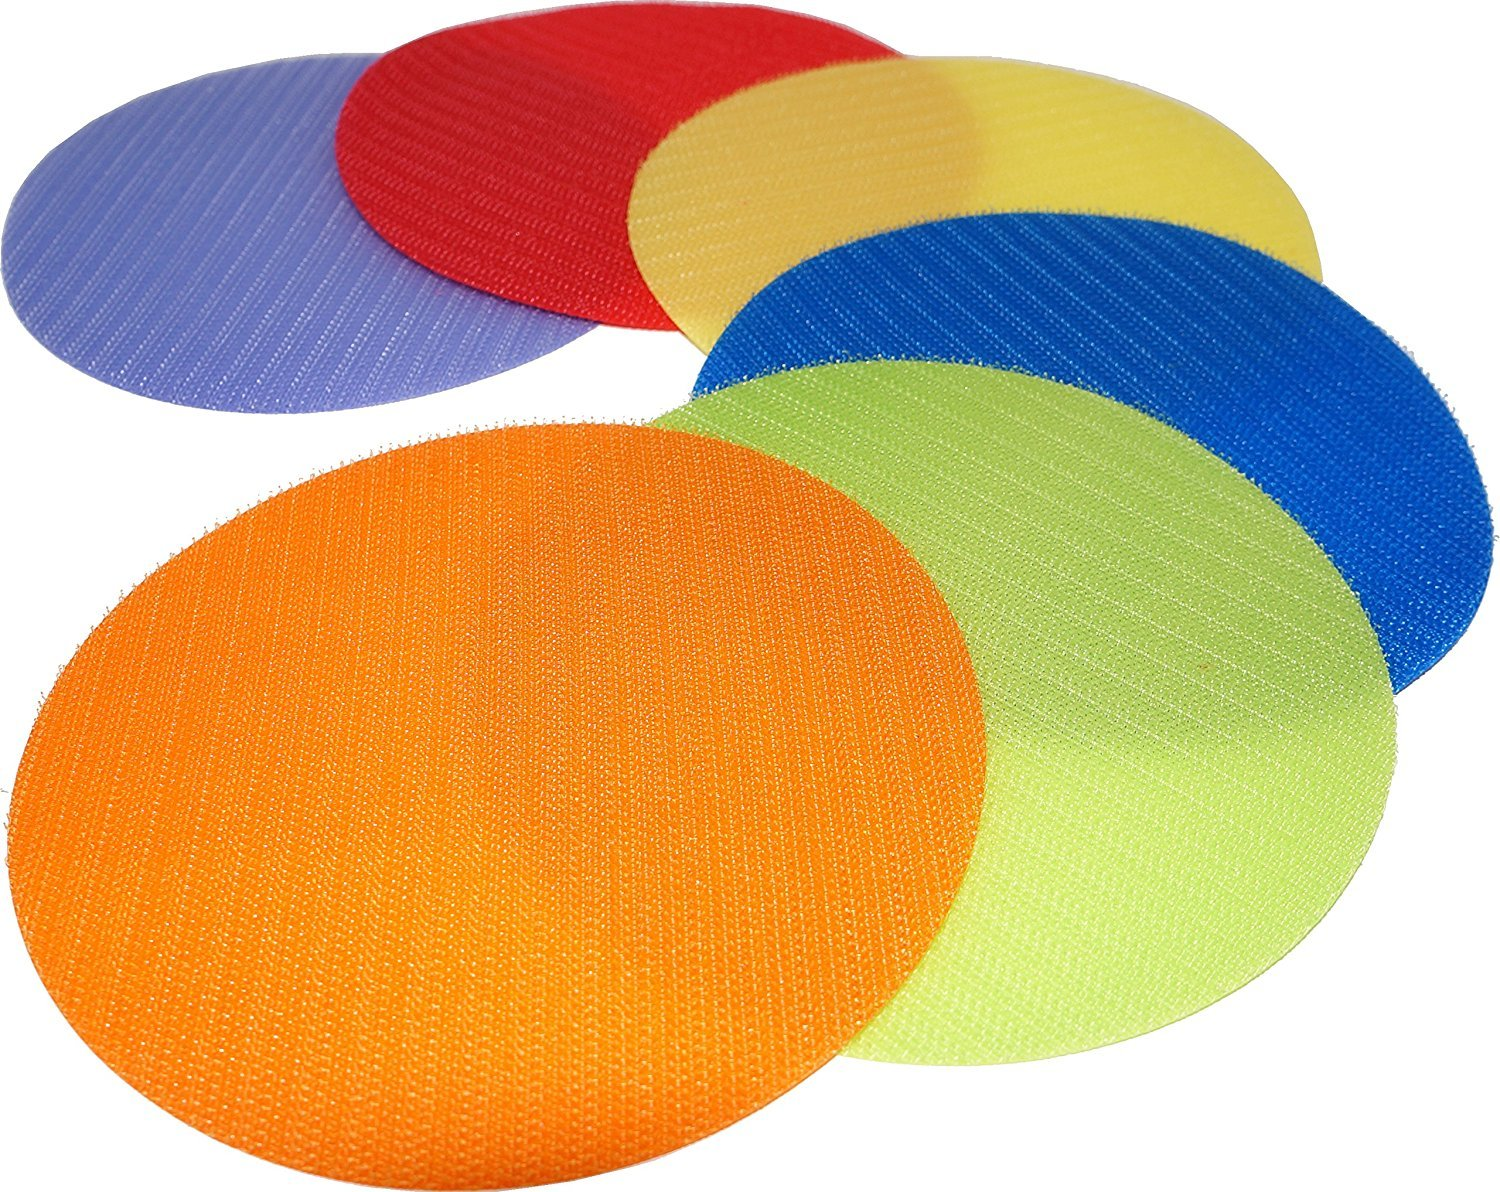 Everyday Educate Carpet Markers Sit Spots - Circle Velcro Sitting Spots 5'' Diameter - Set of 6 (Red, Orange, Yellow, Green, Blue, Purple) by Everyday Educate